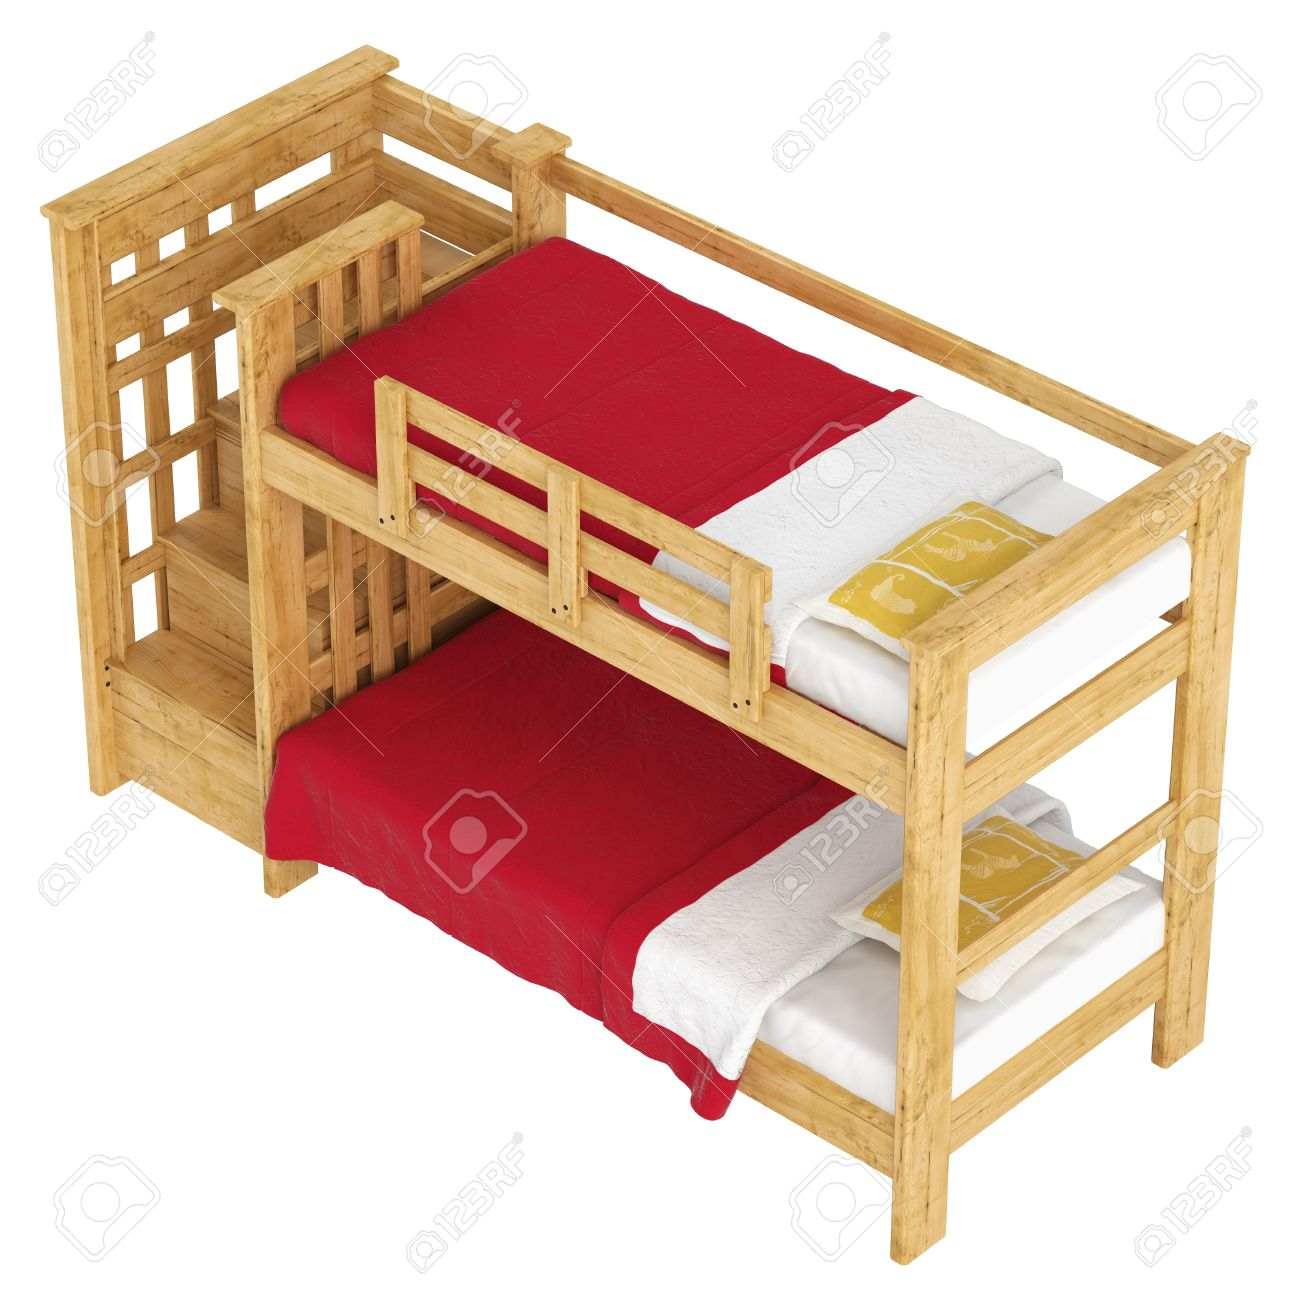 Wooden Double Bunk Bed With A Lattice Framework And Stairs Red Bedlinen Isolated On White